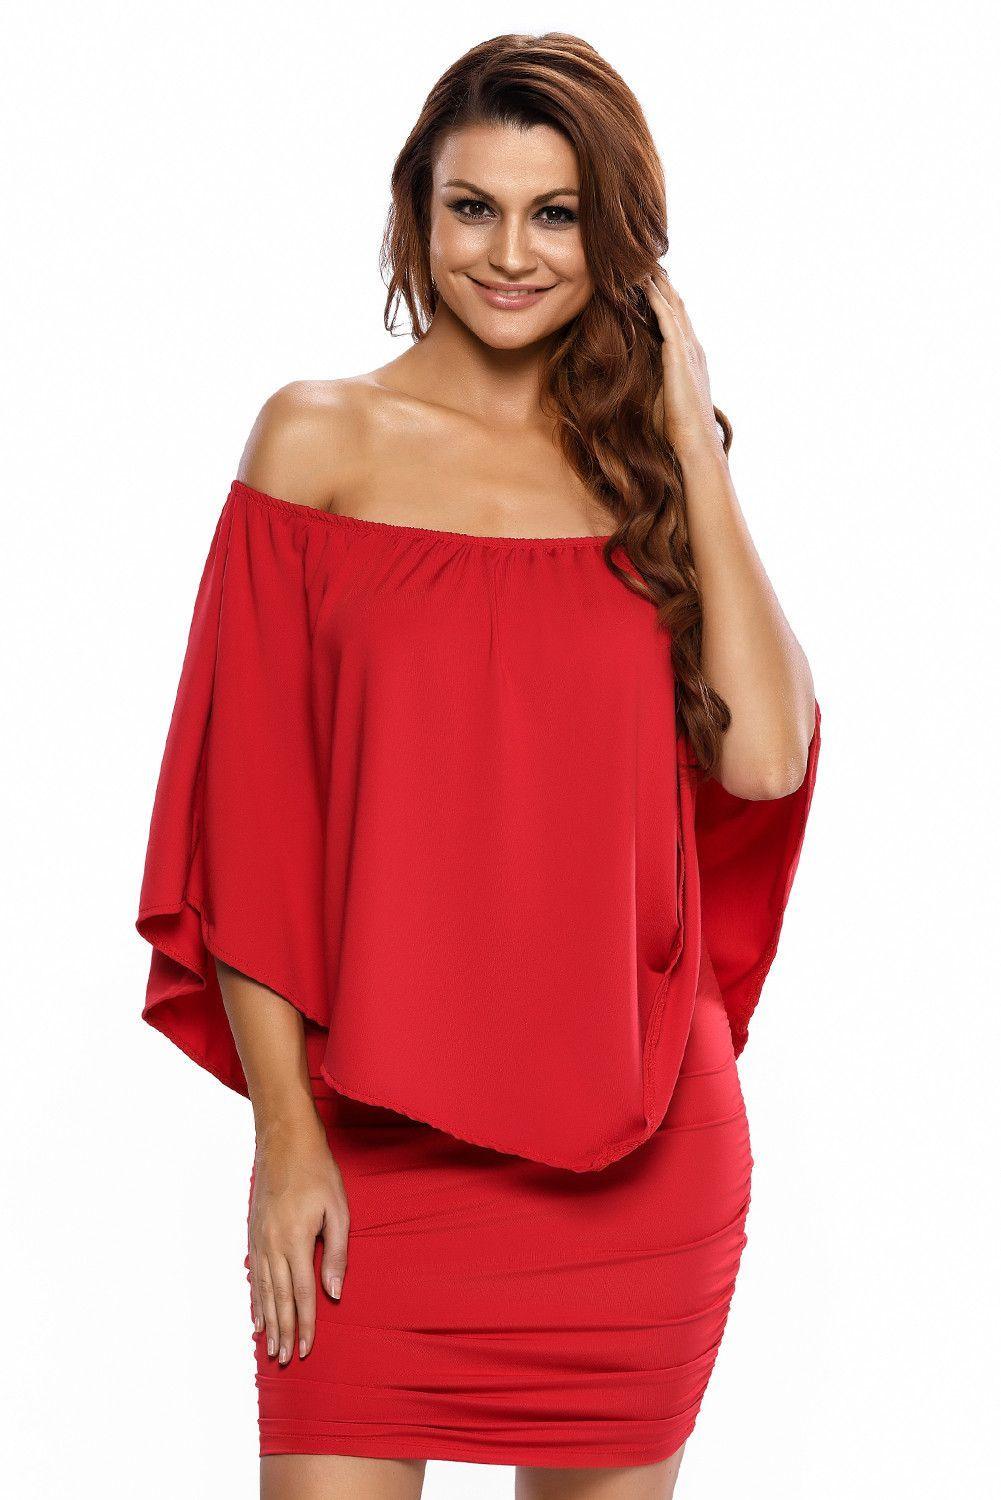 37fab29b1fb Robe a Volant Rouge Courte Chic Vinaigrette de Multiples Couches Pas Cher  www.modebuy.com  Modebuy  Modebuy  Rouge  femmes  me  robes